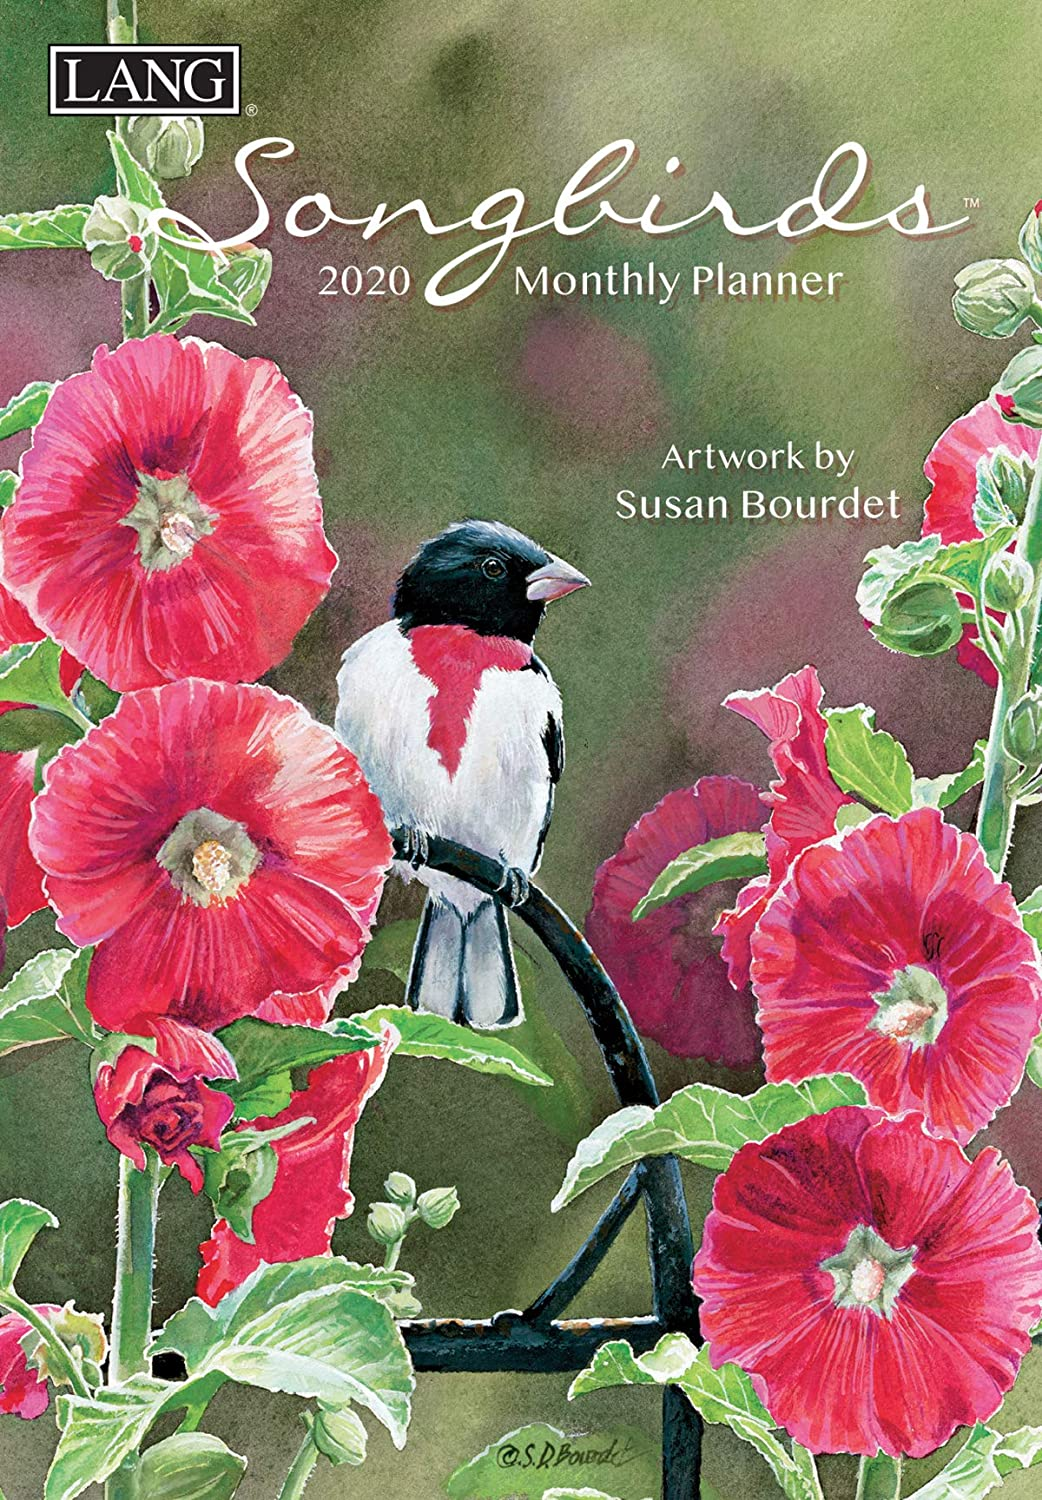 Lang Songbirds 2020 Monthly Planner (20991012120)